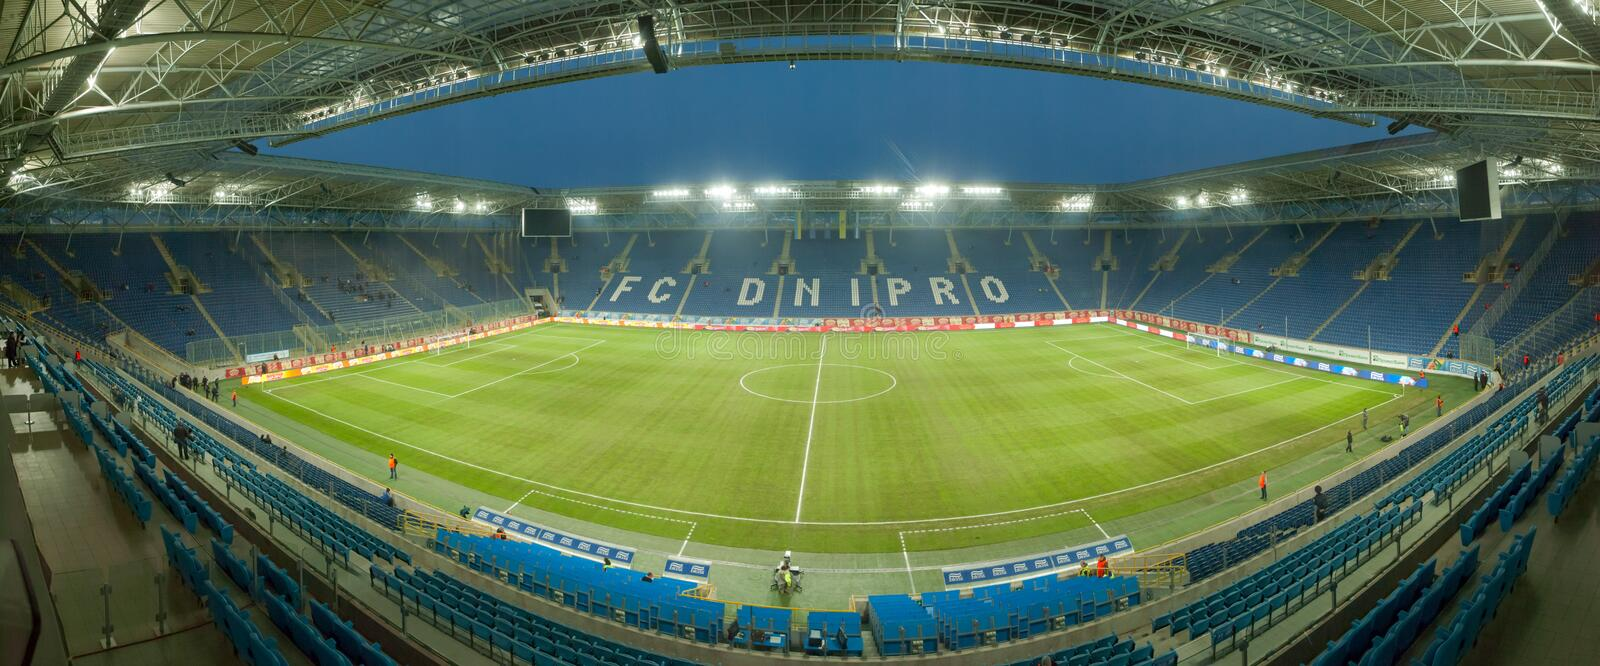 Dnepr Arena. DNEPROPETROVSK, UKRAINE – OCTOBER 6: Dnipro Stadium Arena before Ukrainian Championship match FC Dnepr vs. FC Metalist on October 6, 2013 in stock photo